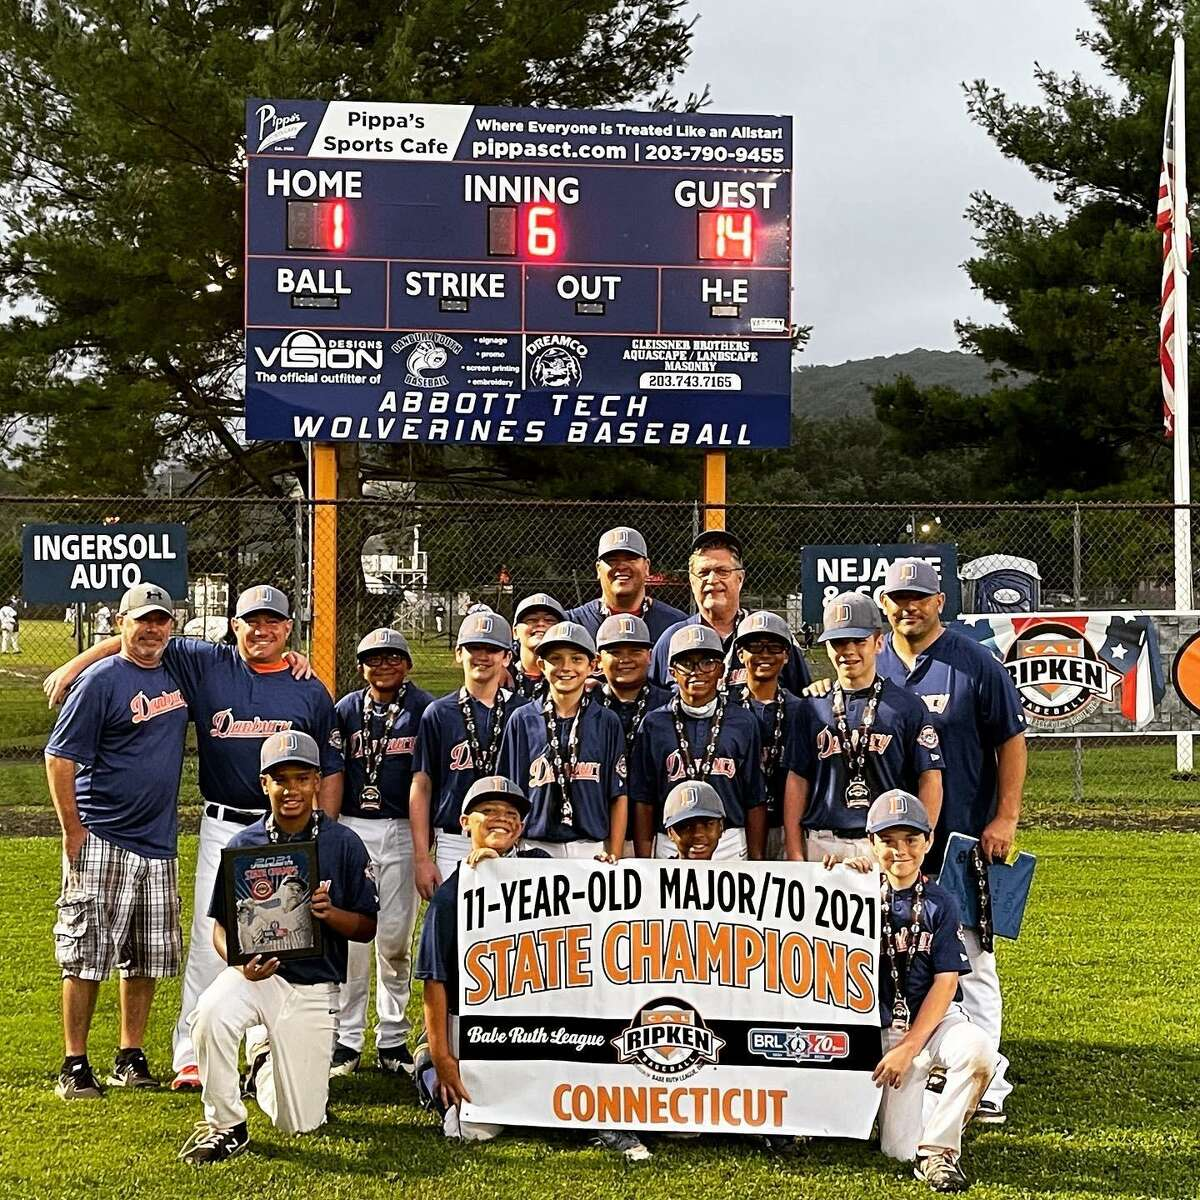 The Danbury 11, and under baseball team recently beat Greenwich 14-1 at Rogers Park in Danbury in the 2021 state championship. Pictured in the front row are: Ezequiel Cueto; Lawrence Roccamo; Aiden Martin, and Jack Eriquez. Pictured in the back row are: Jaxon Lopez, Jimmy Bianco; Finn Cline; Caden Amalfitano; Izaiah Scalzo; Noah Richardson; Andrew Huizinga, and Bobby Mariano.